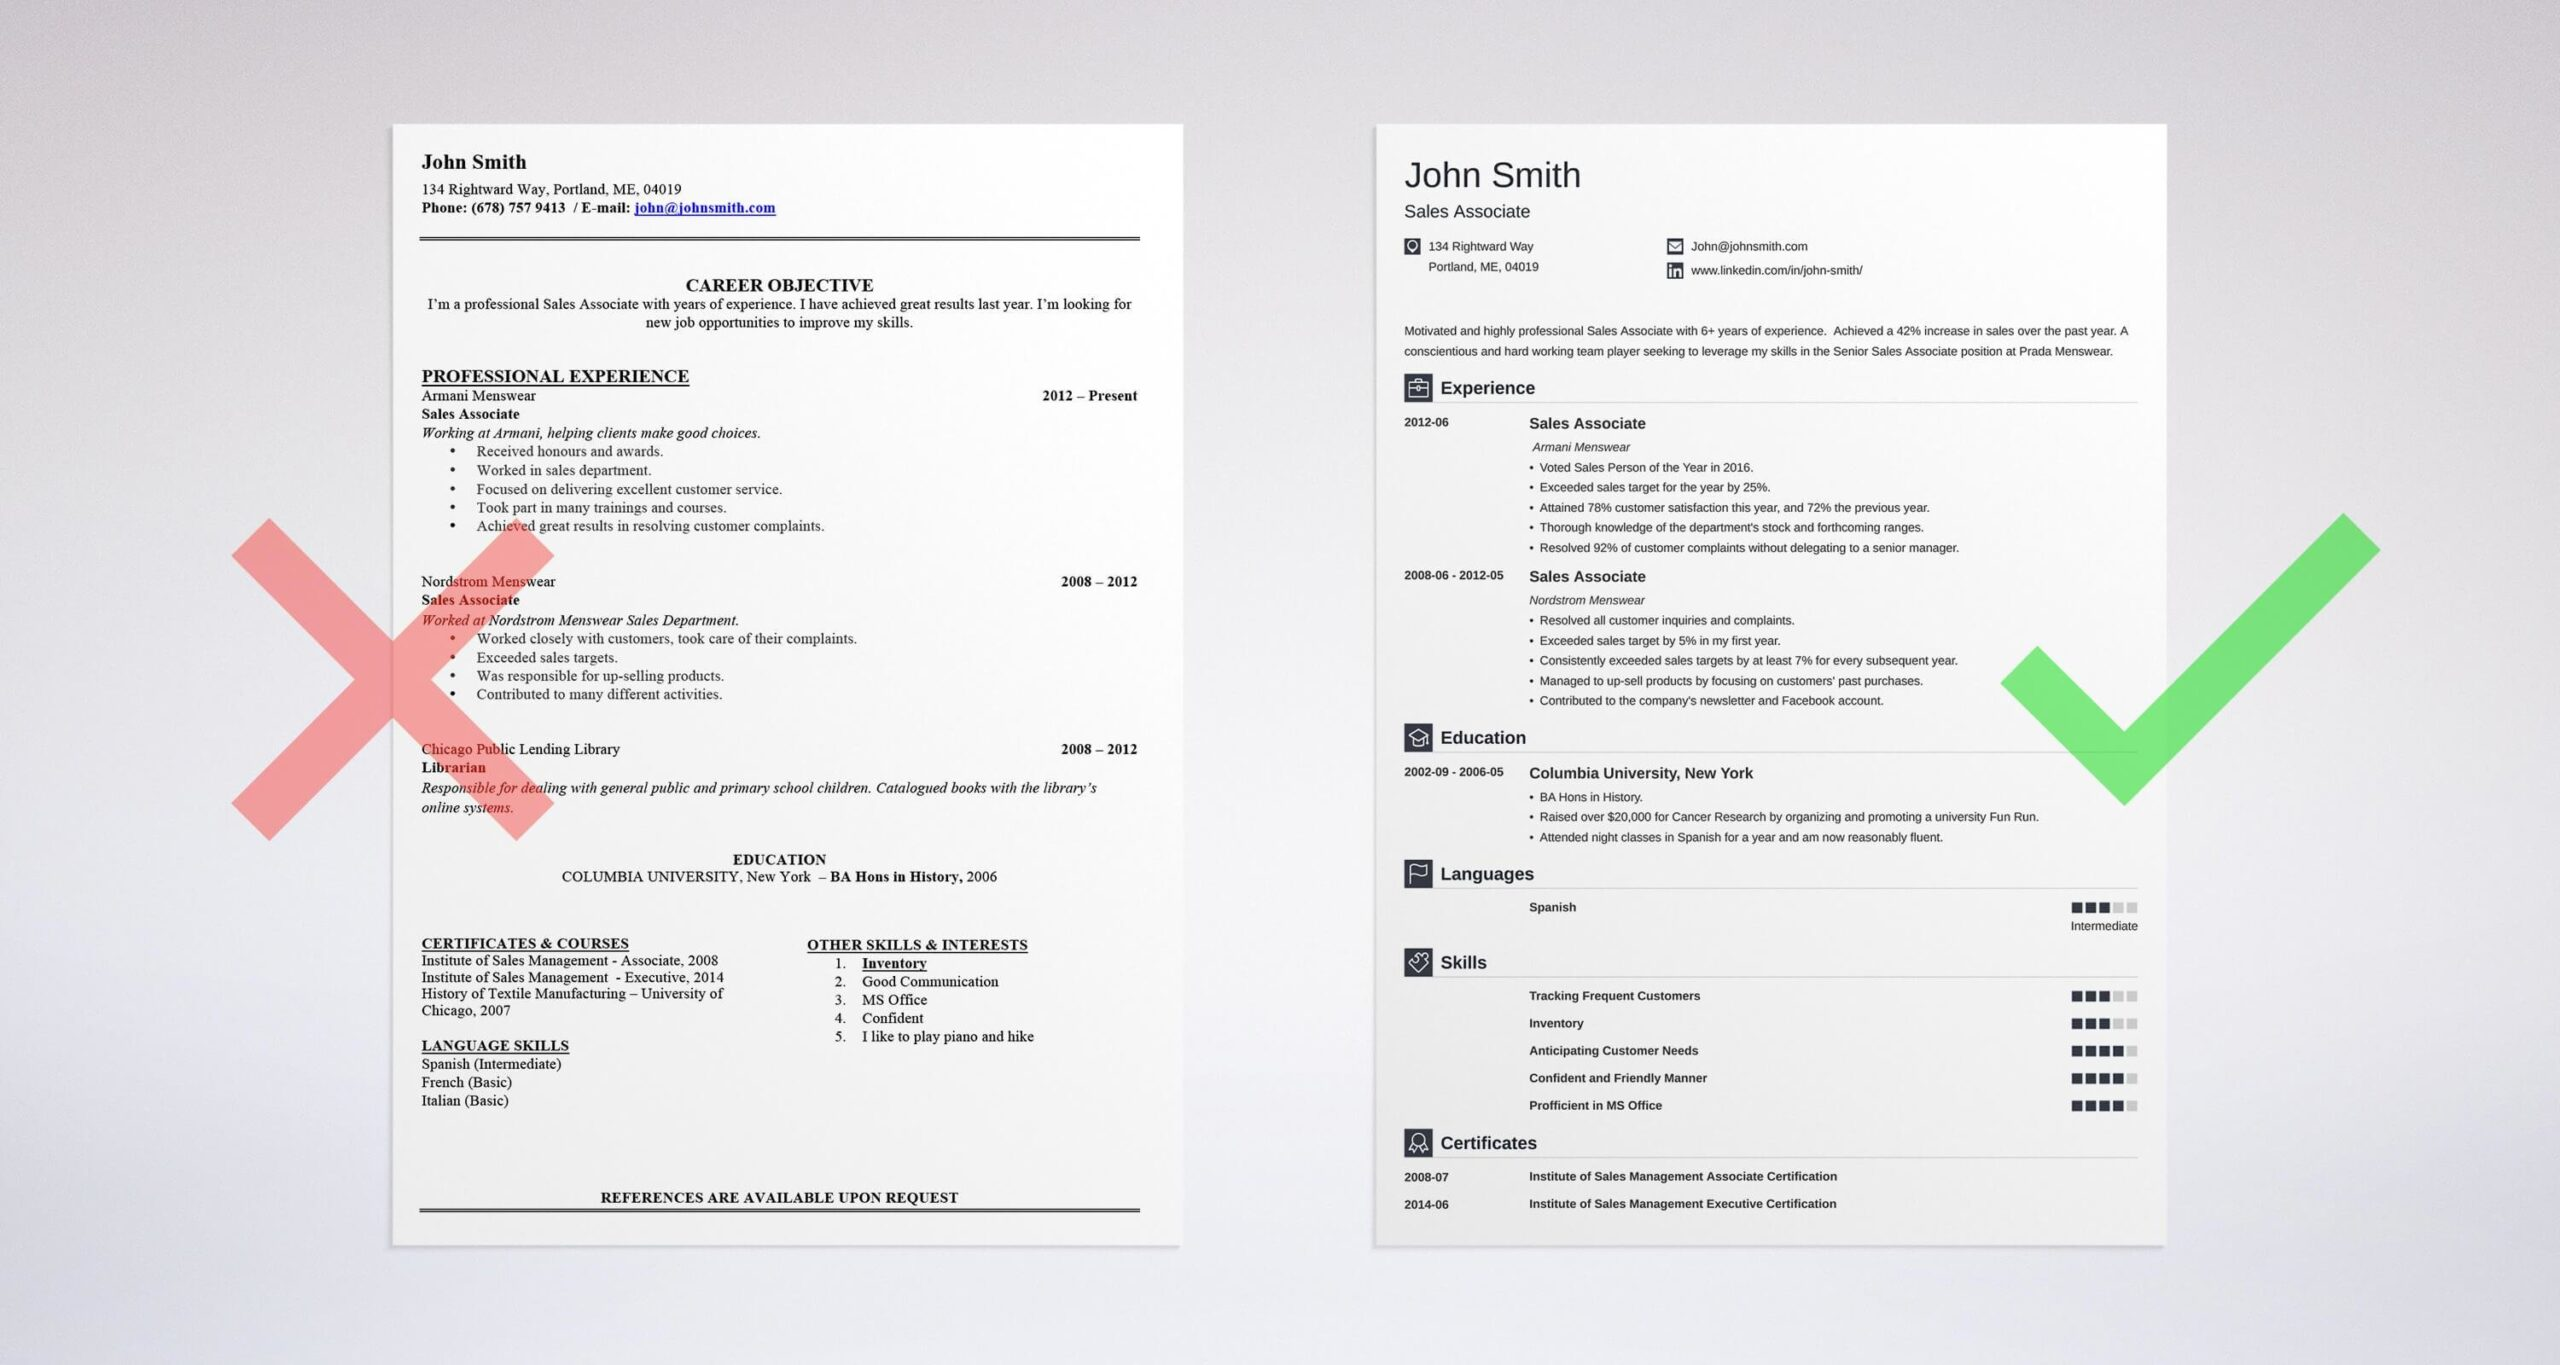 professional resume summary examples statements builder for on template light Resume Summary Builder For Resume